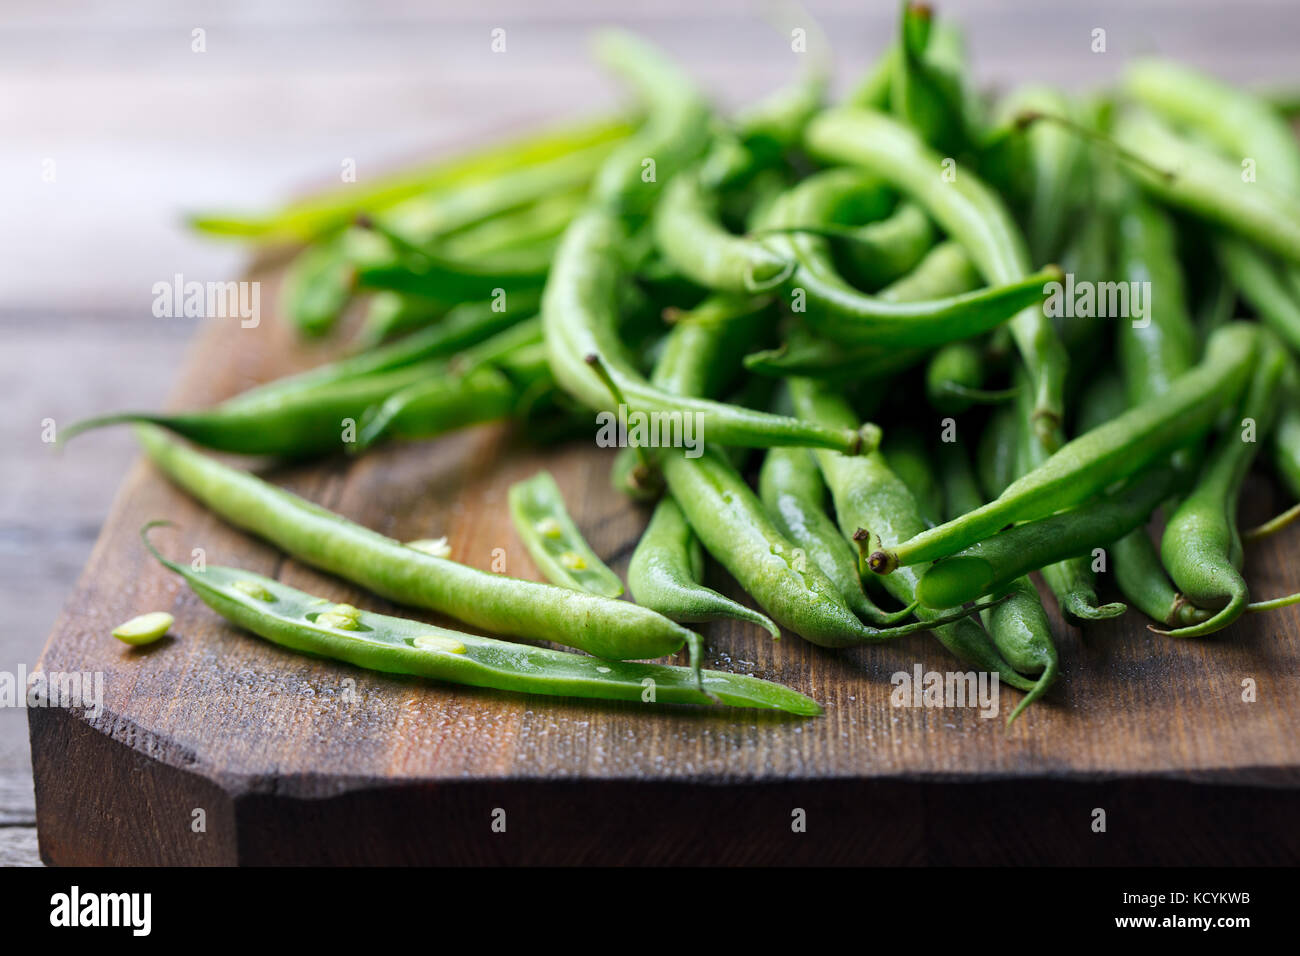 Green beans on wooden cutting board. Go green concept - Stock Image